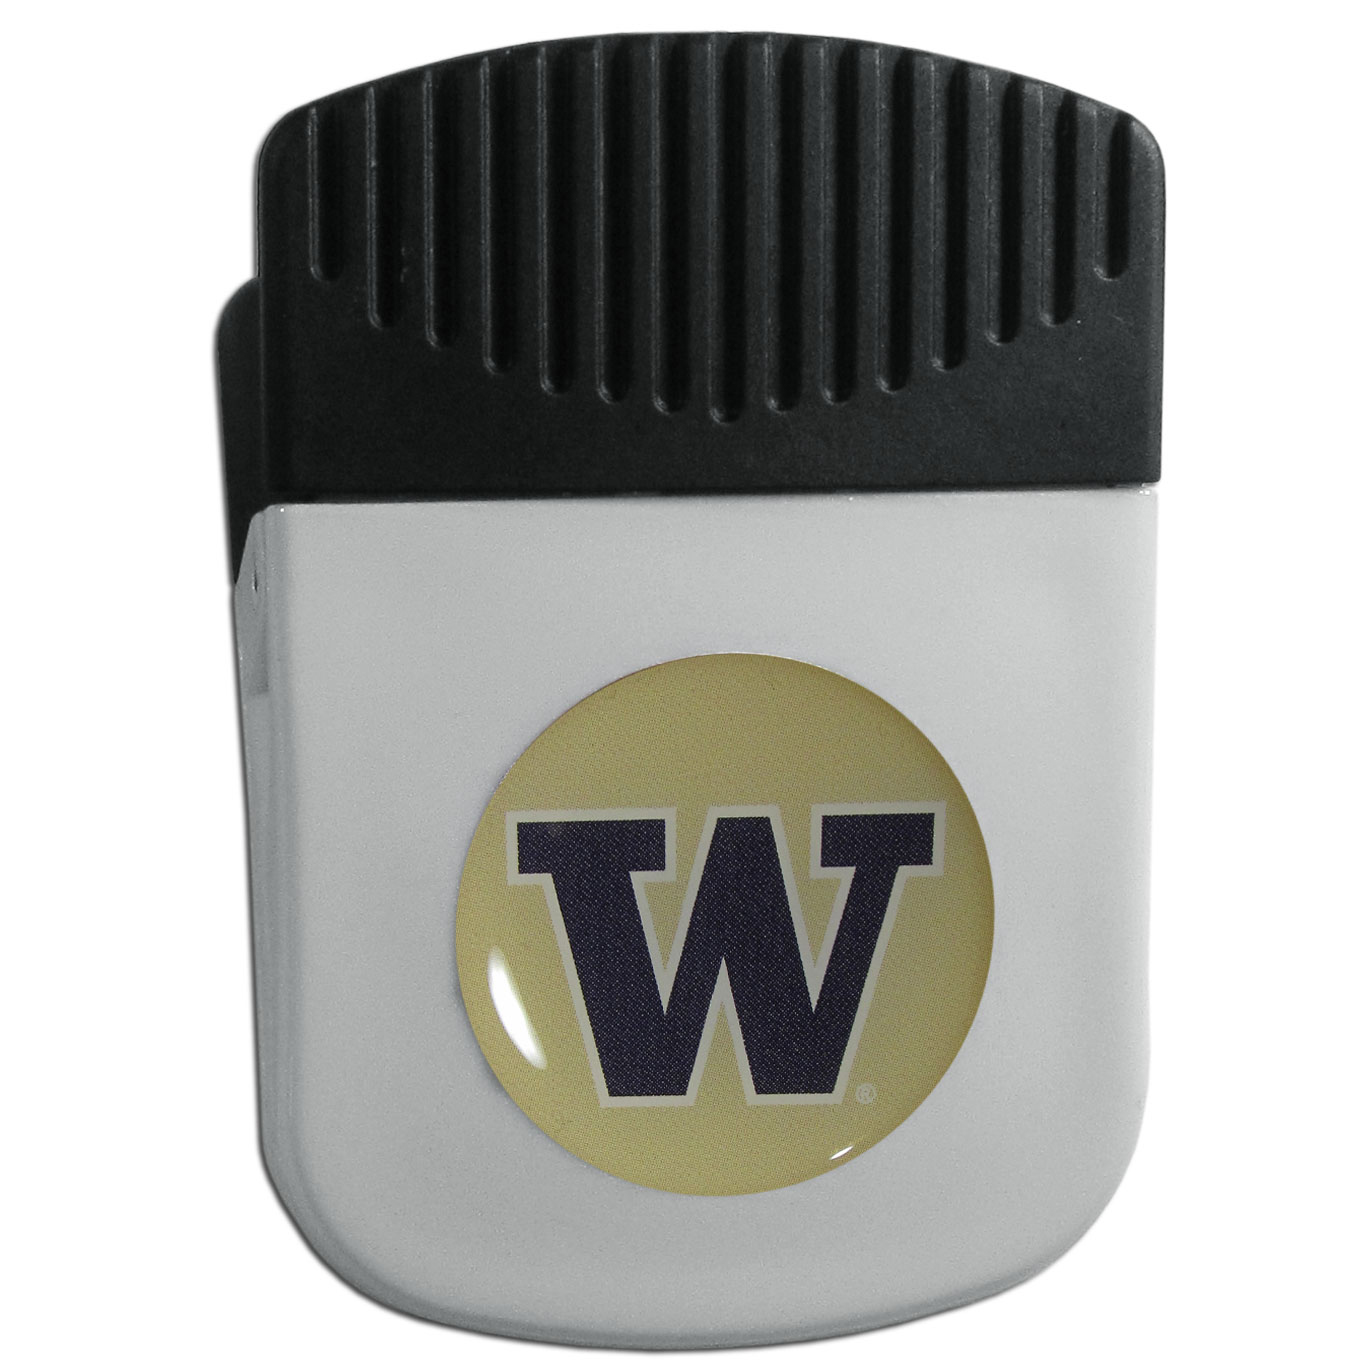 Washington Huskies Chip Clip Magnet - Use this attractive clip magnet to hold memos, photos or appointment cards on the fridge or take it down keep use it to clip bags shut. The magnet features a domed Washington Huskies logo.